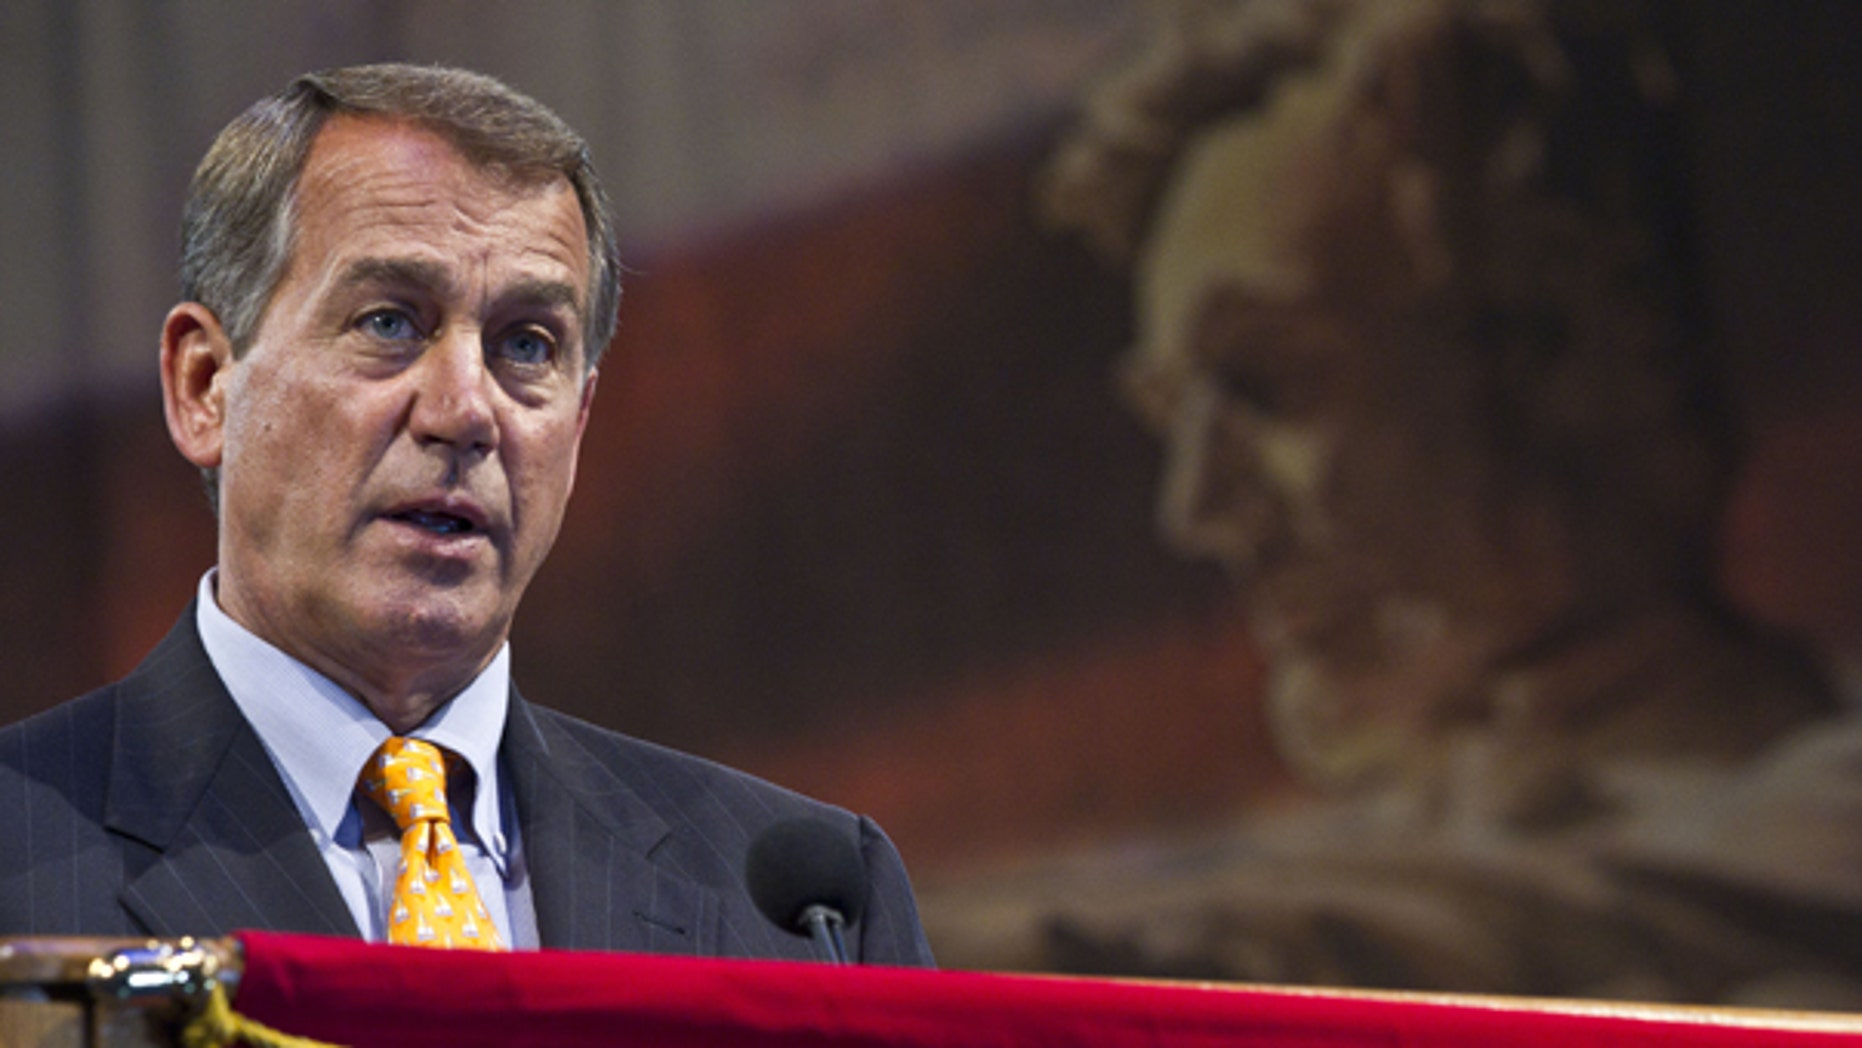 Aug. 31: House Republican leader John Boehner speaks at the American Legion convention in Milwaukee.